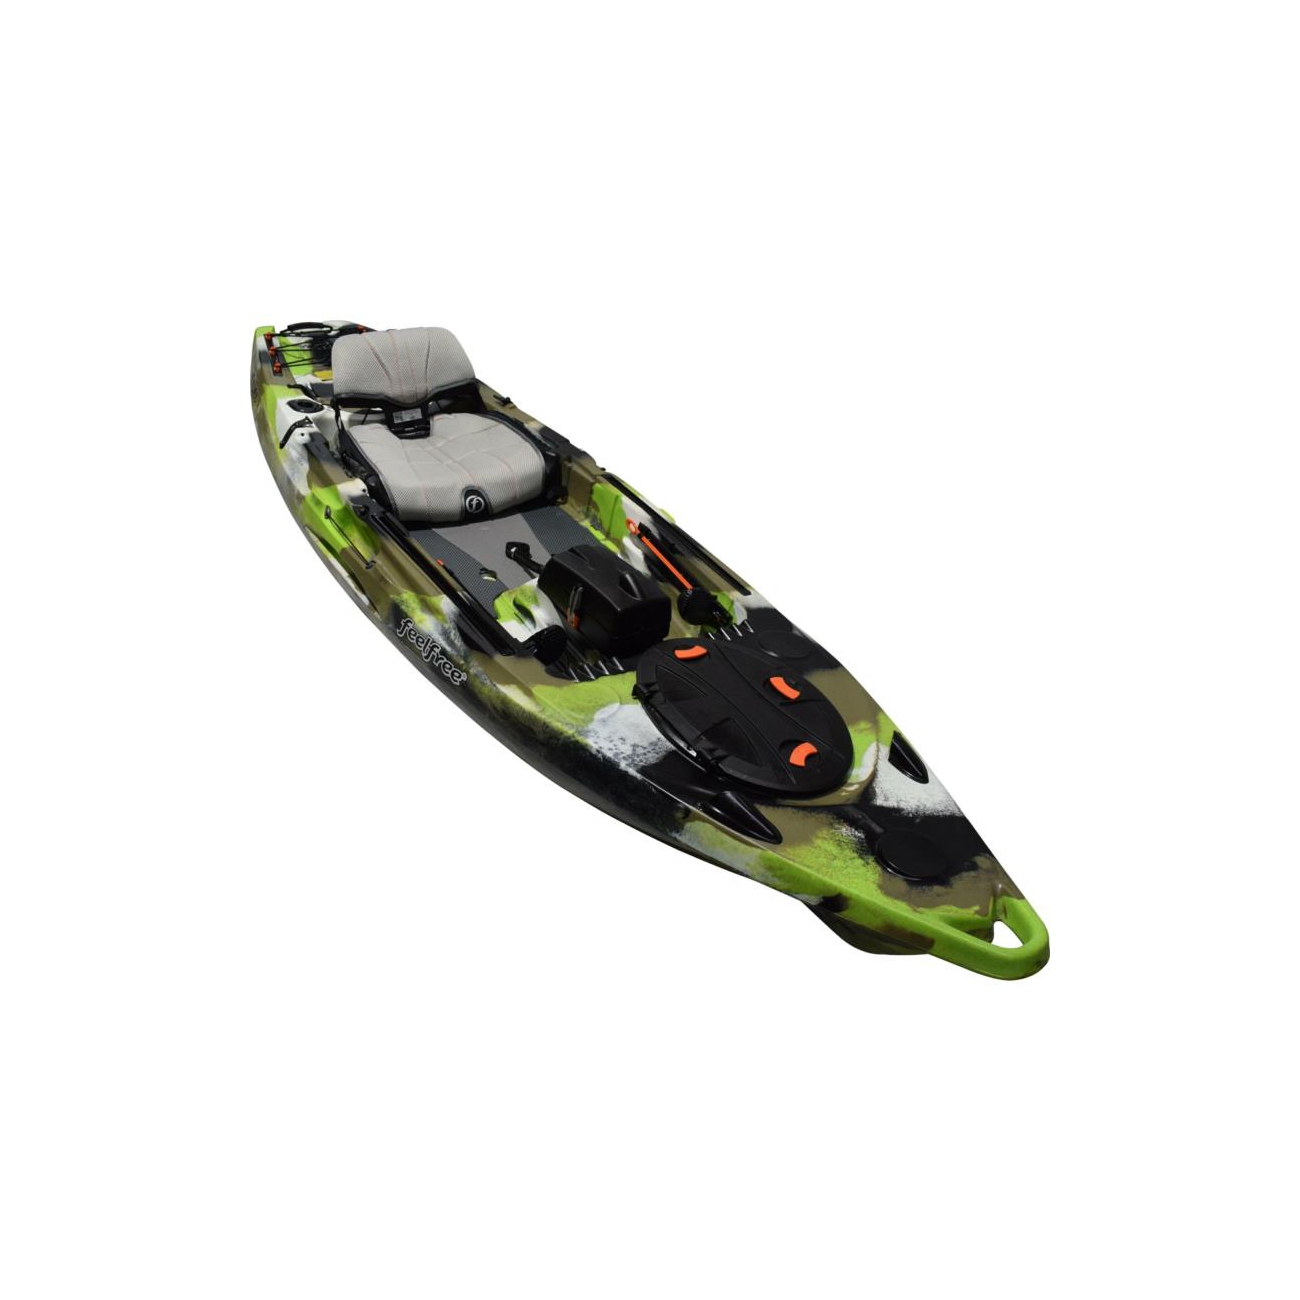 https://feelfreekayak.eu/658-small_default/lure-115-v2-winter-camo.jpg